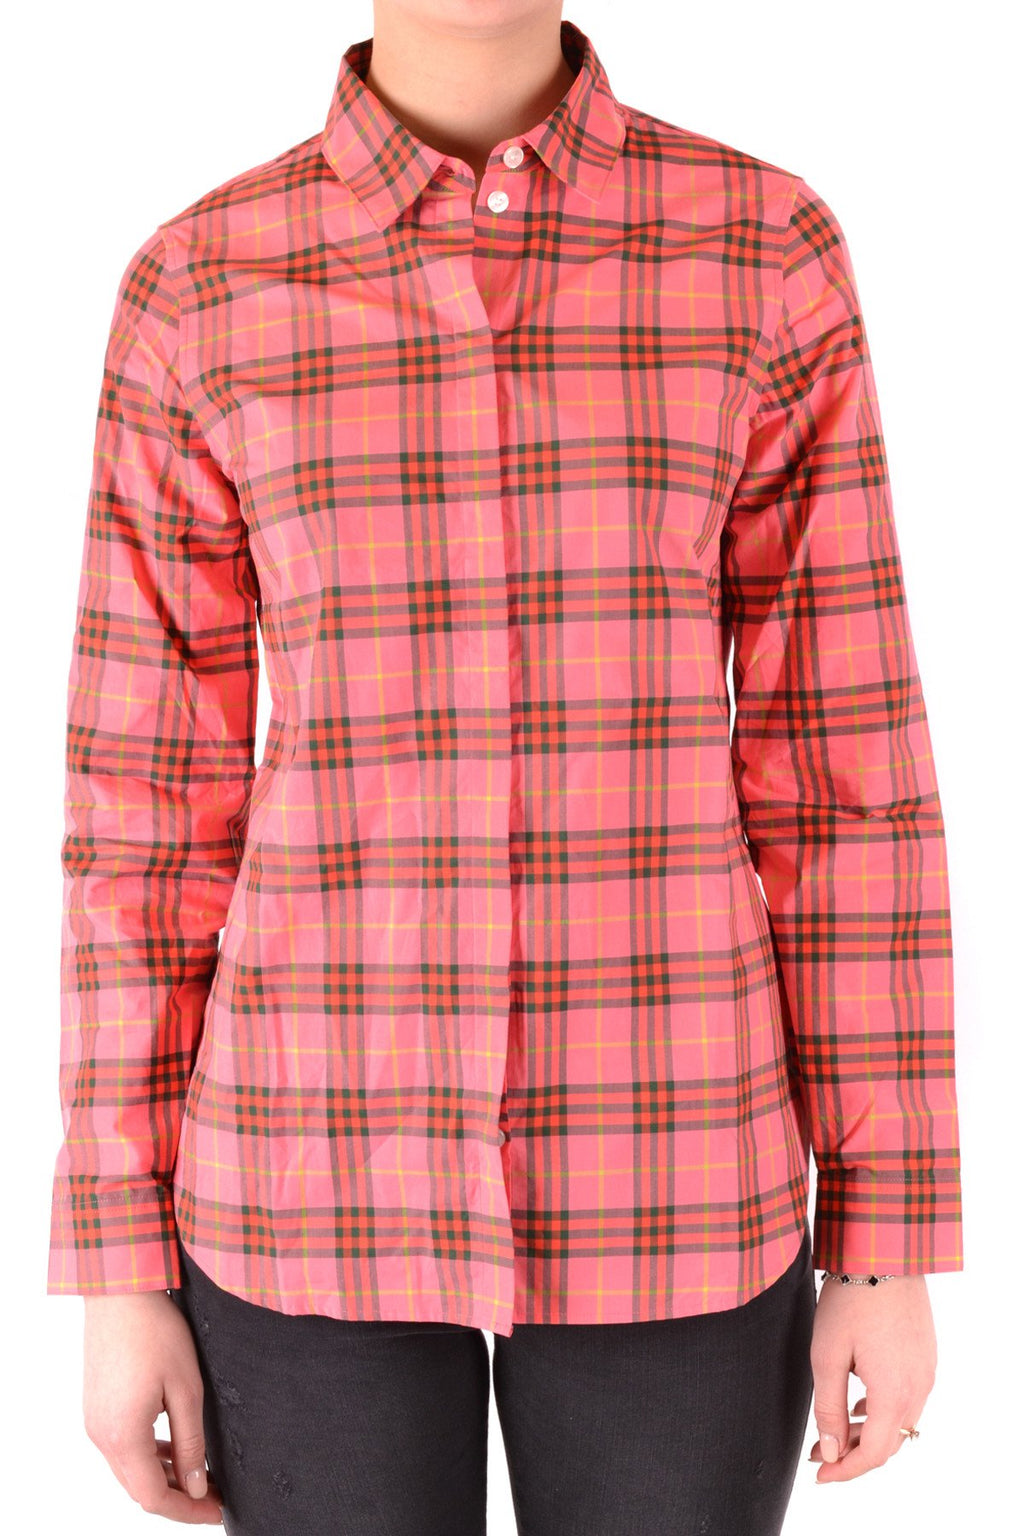 Burberry Woman Shirt